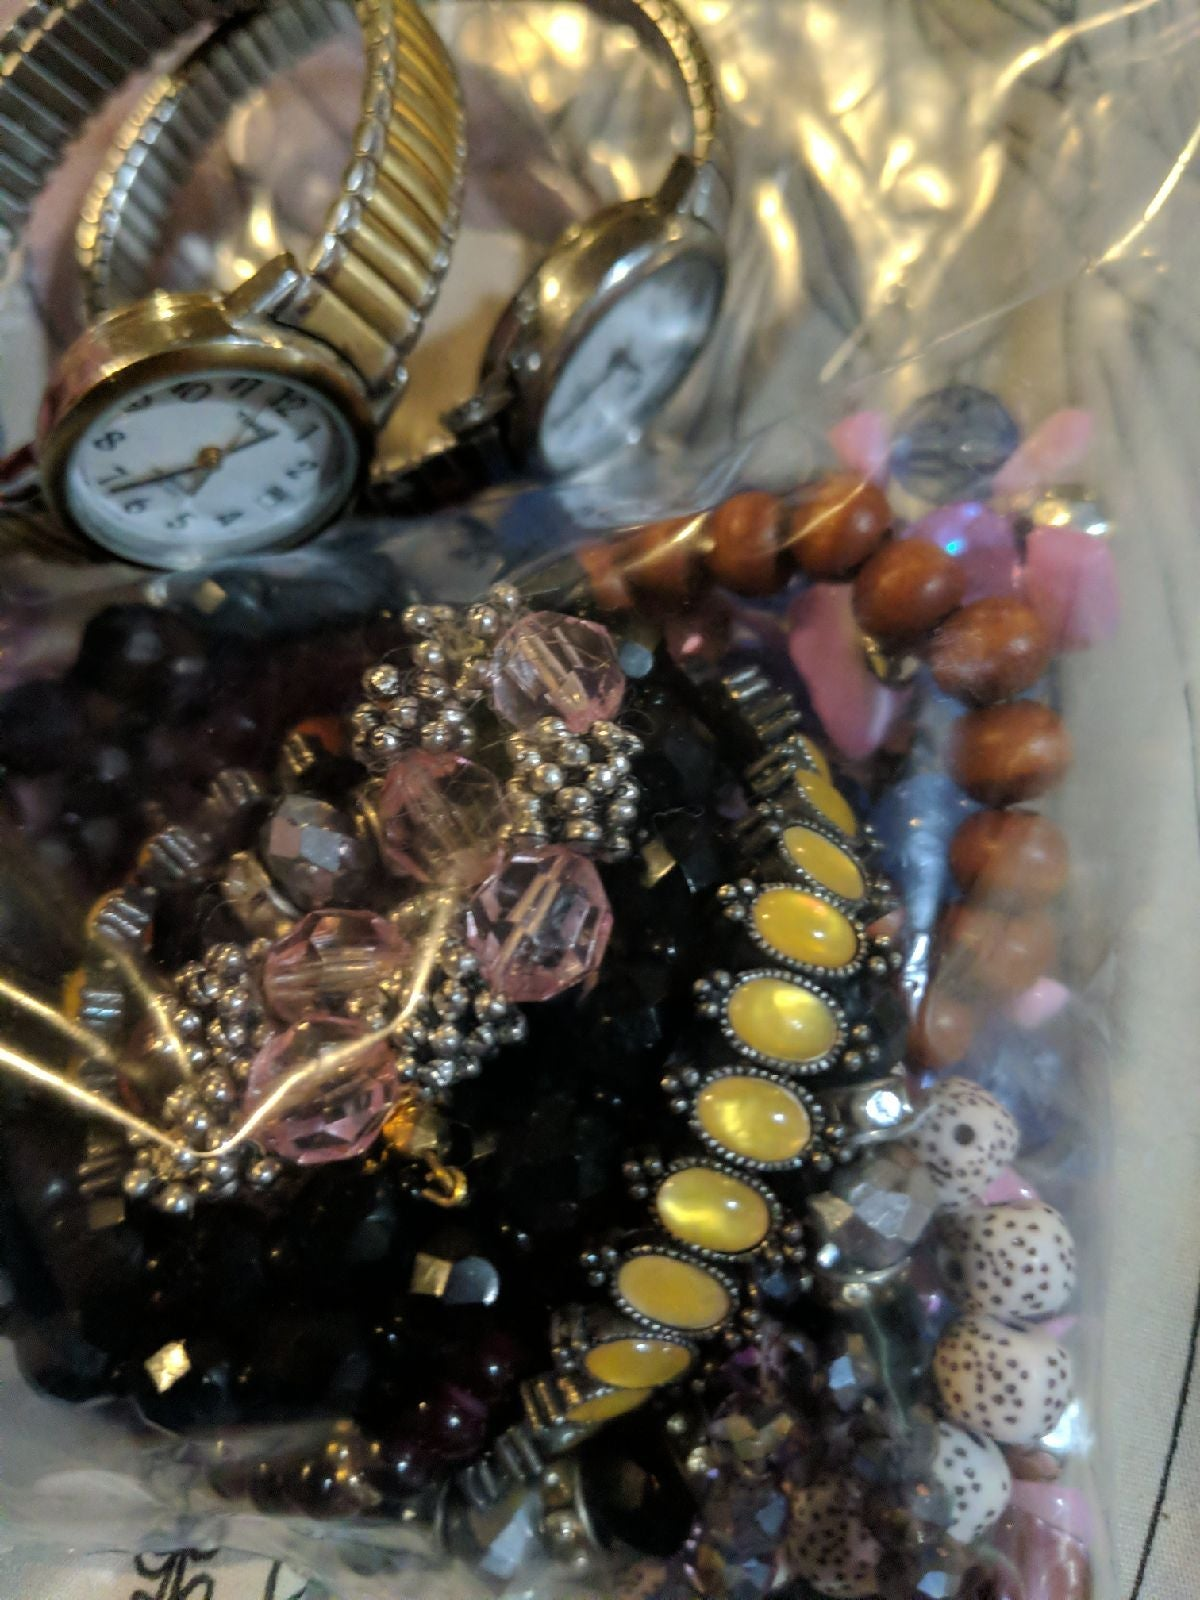 Lot of 12 bracelets and 2 watches